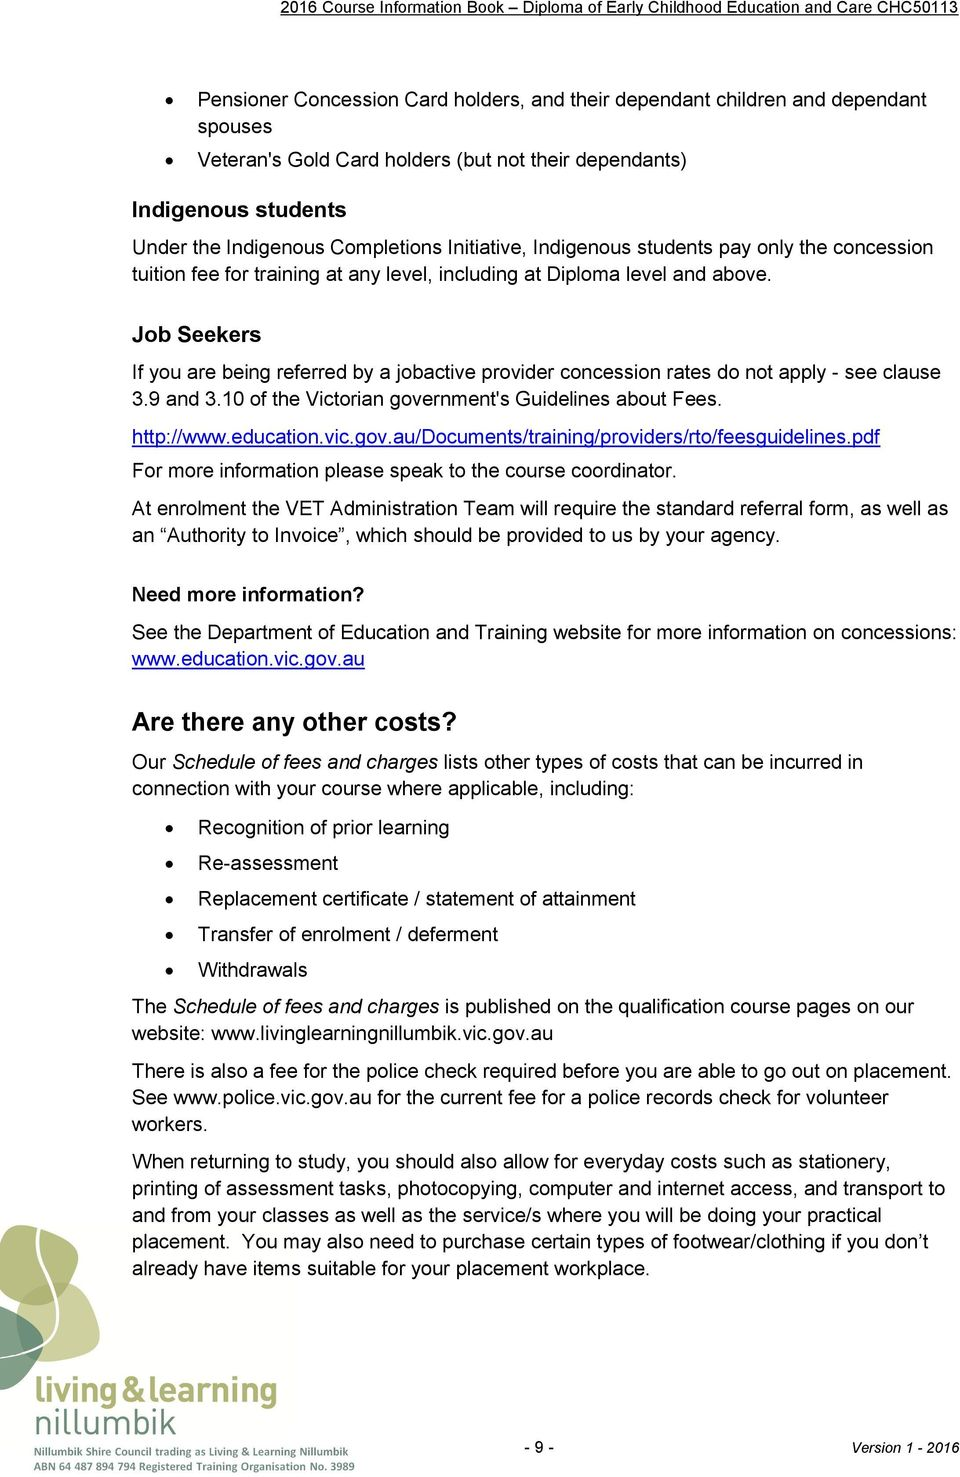 Job Seekers If you are being referred by a jobactive provider concession rates do not apply - see clause 3.9 and 3.10 of the Victorian government's Guidelines about Fees. http://www.education.vic.gov.au/documents/training/providers/rto/feesguidelines.